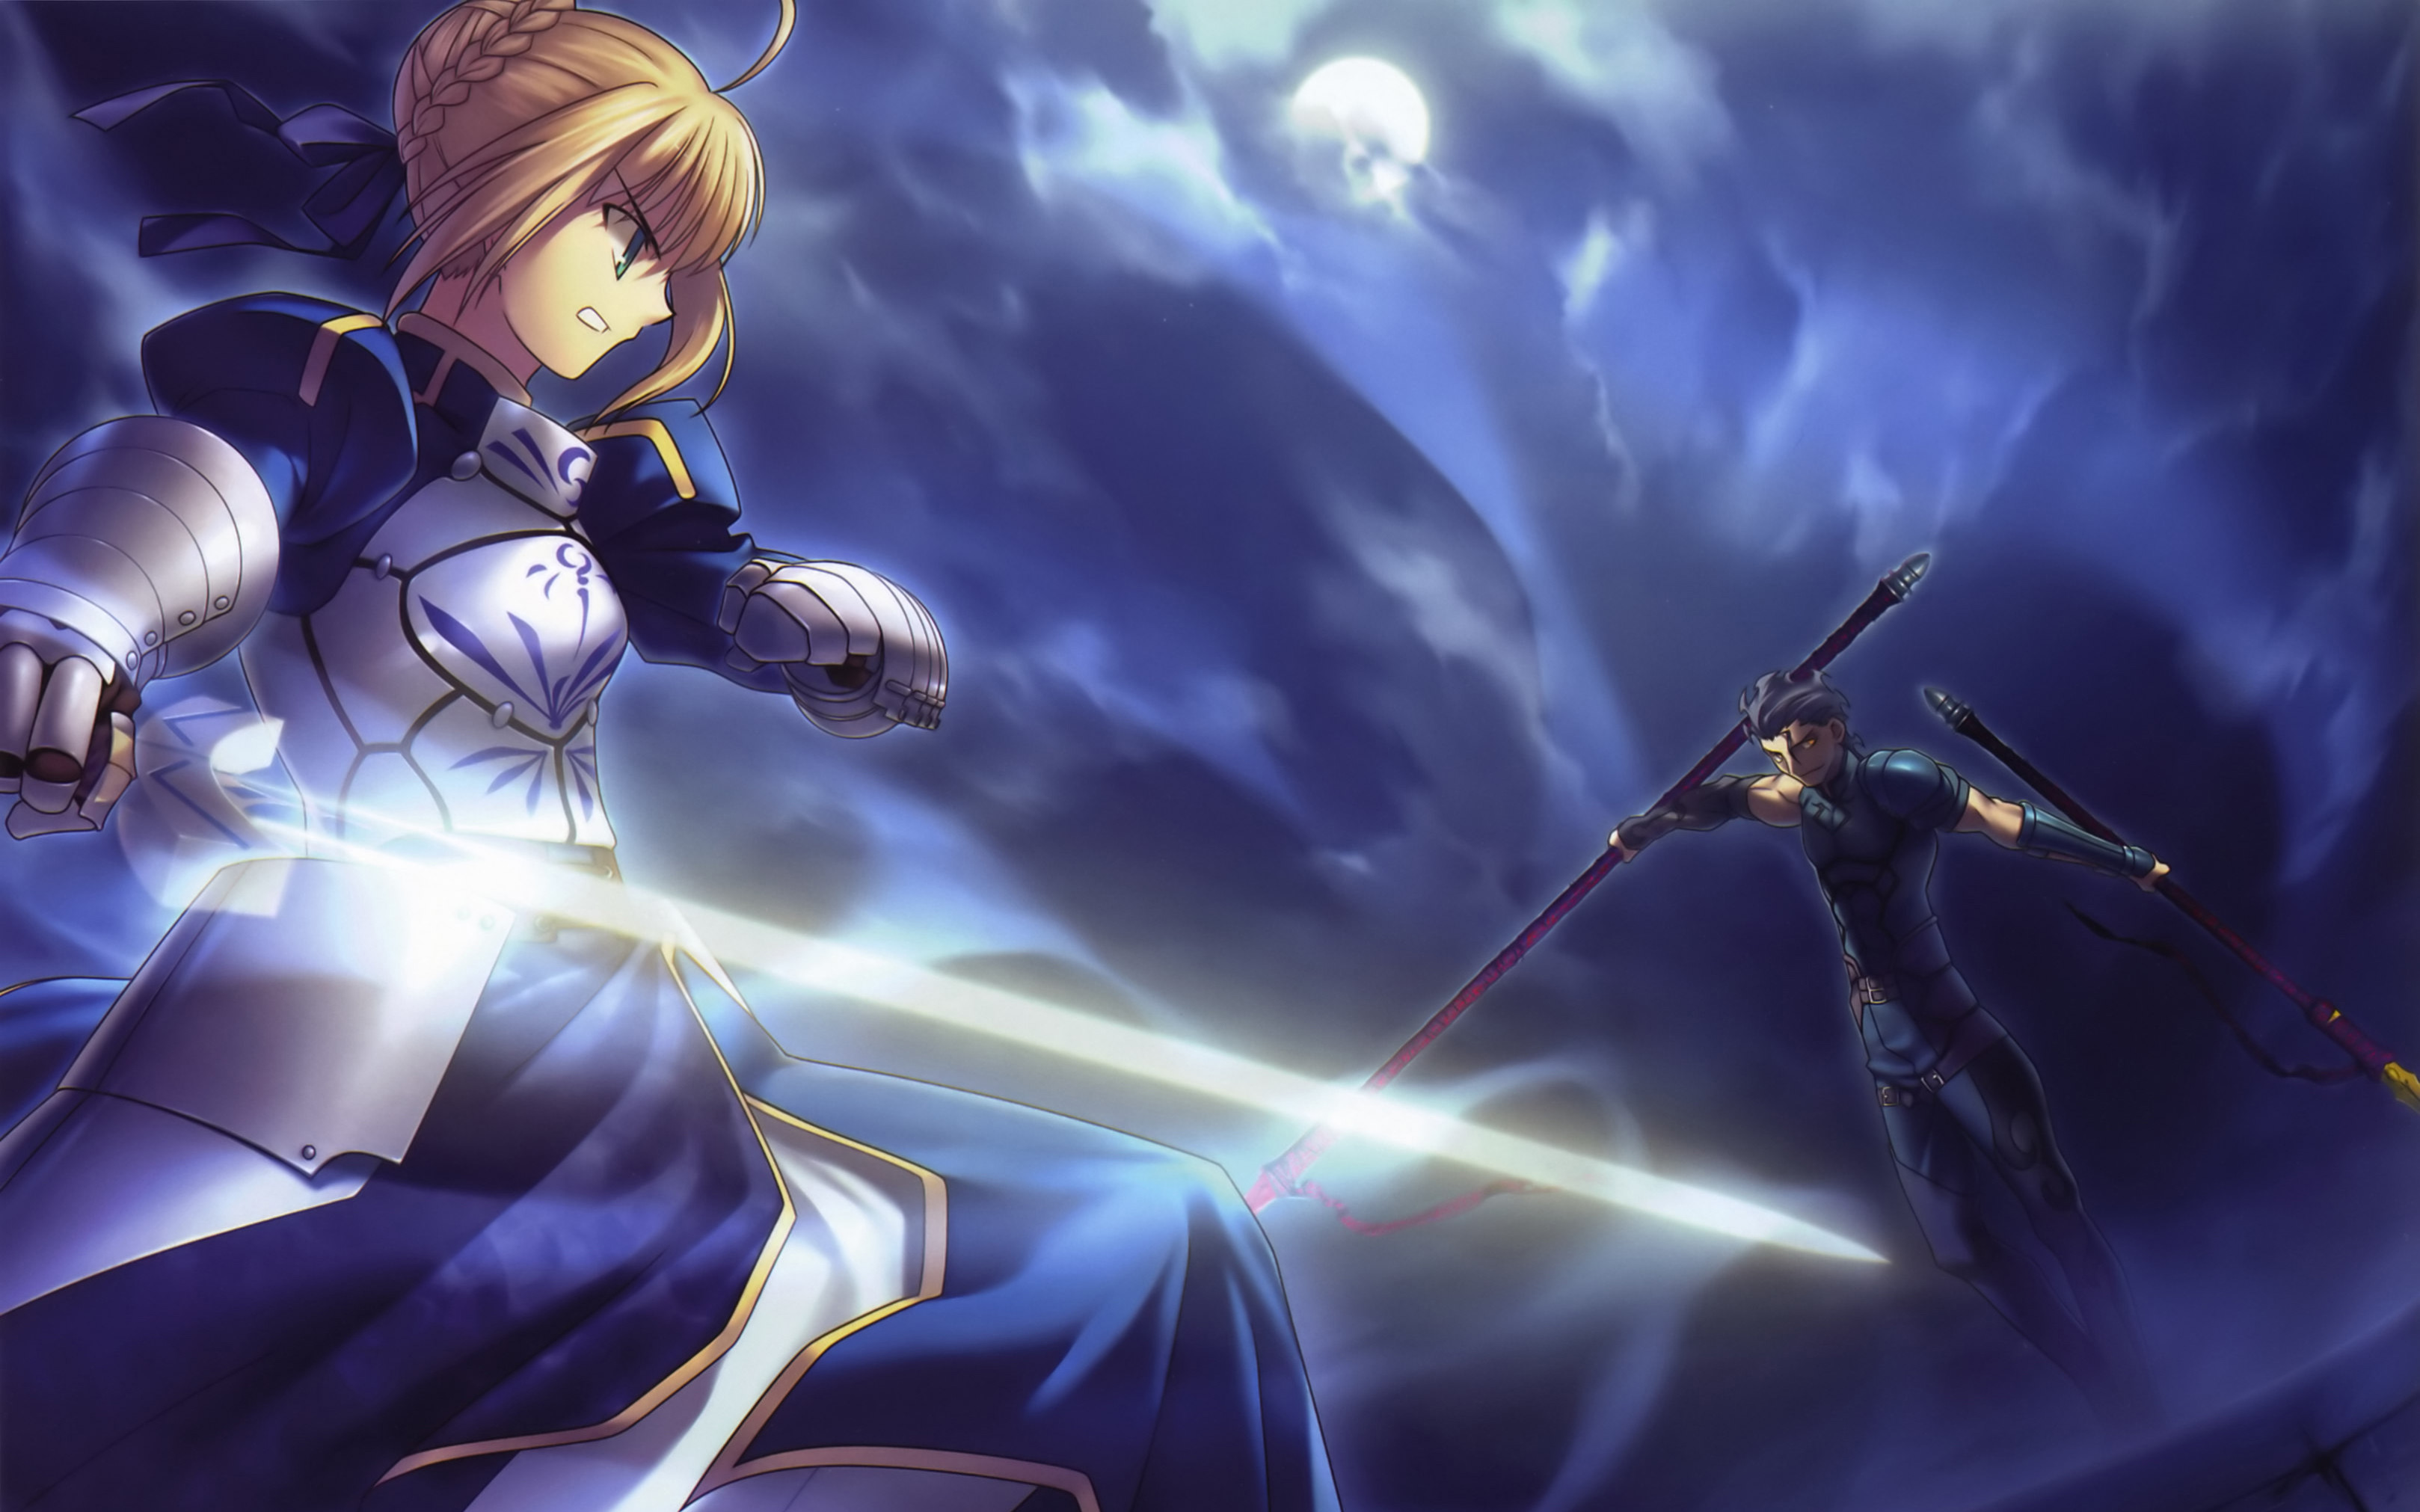 Fate stay night wallpaper hd 79 images - Fate stay night wallpaper ...